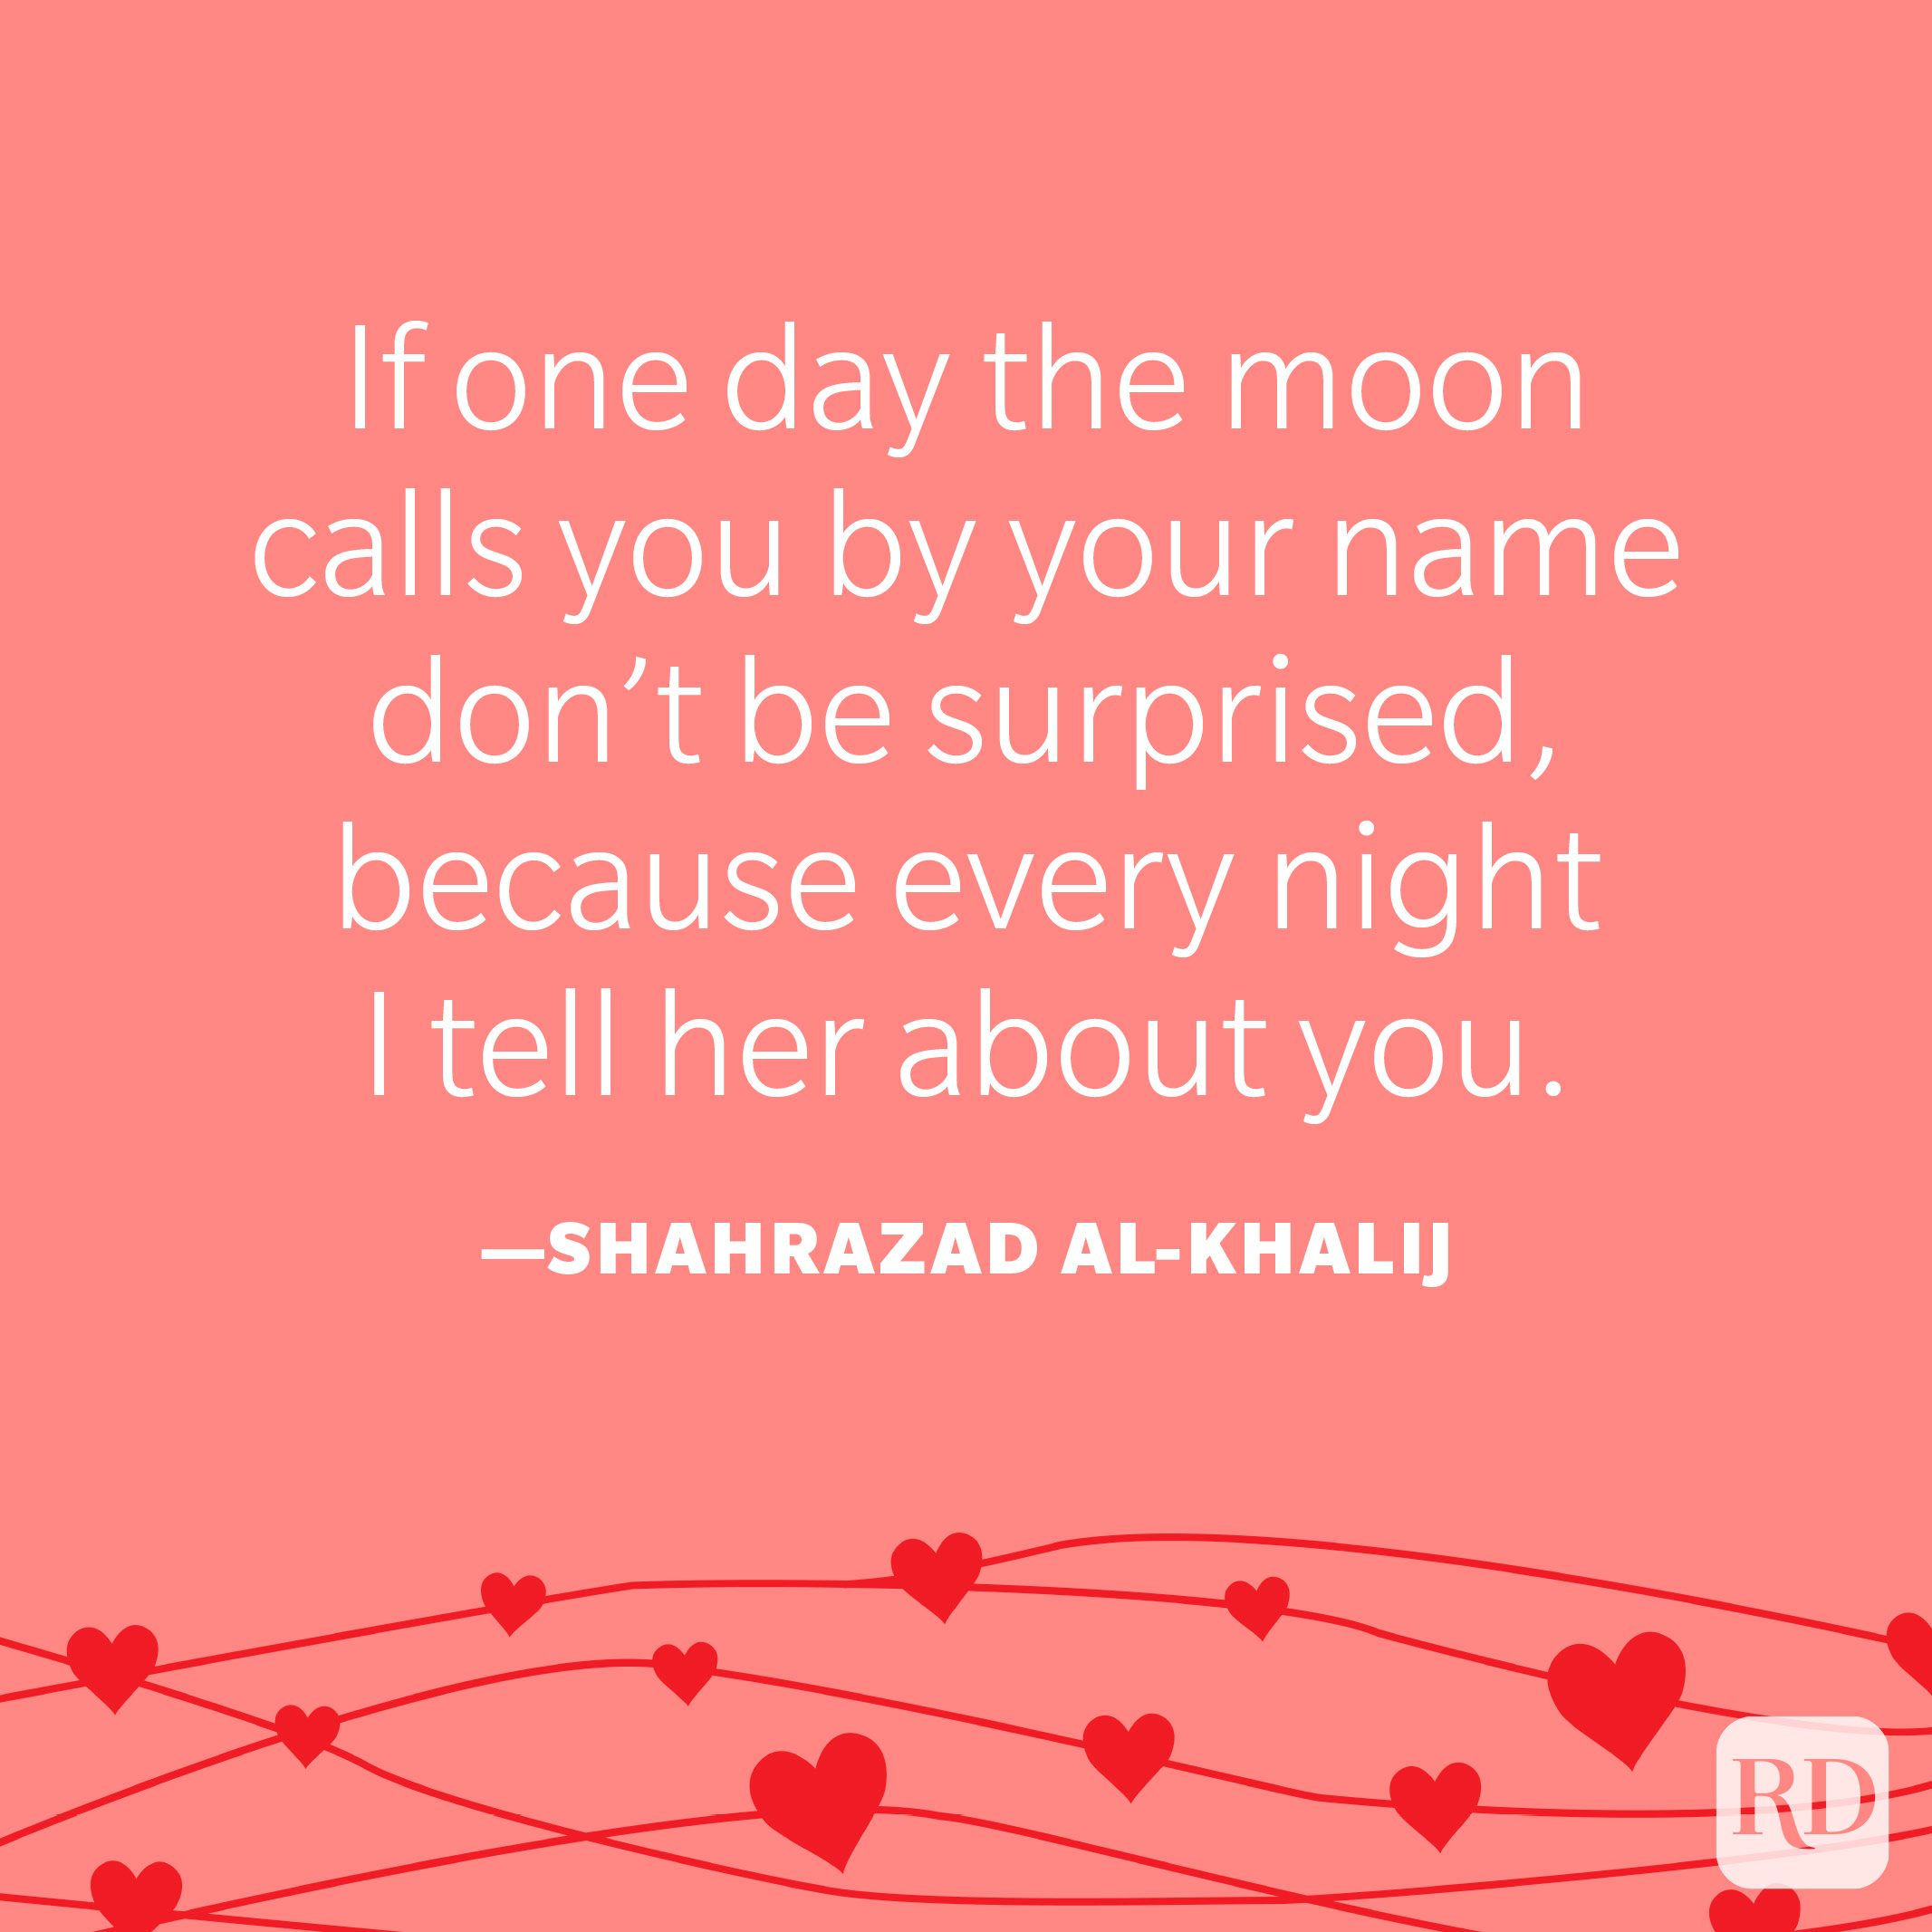 """""""If one day the moon calls you by your name don't be surprised, because every night I tell her about you.""""—Shahrazad al-Khalij"""